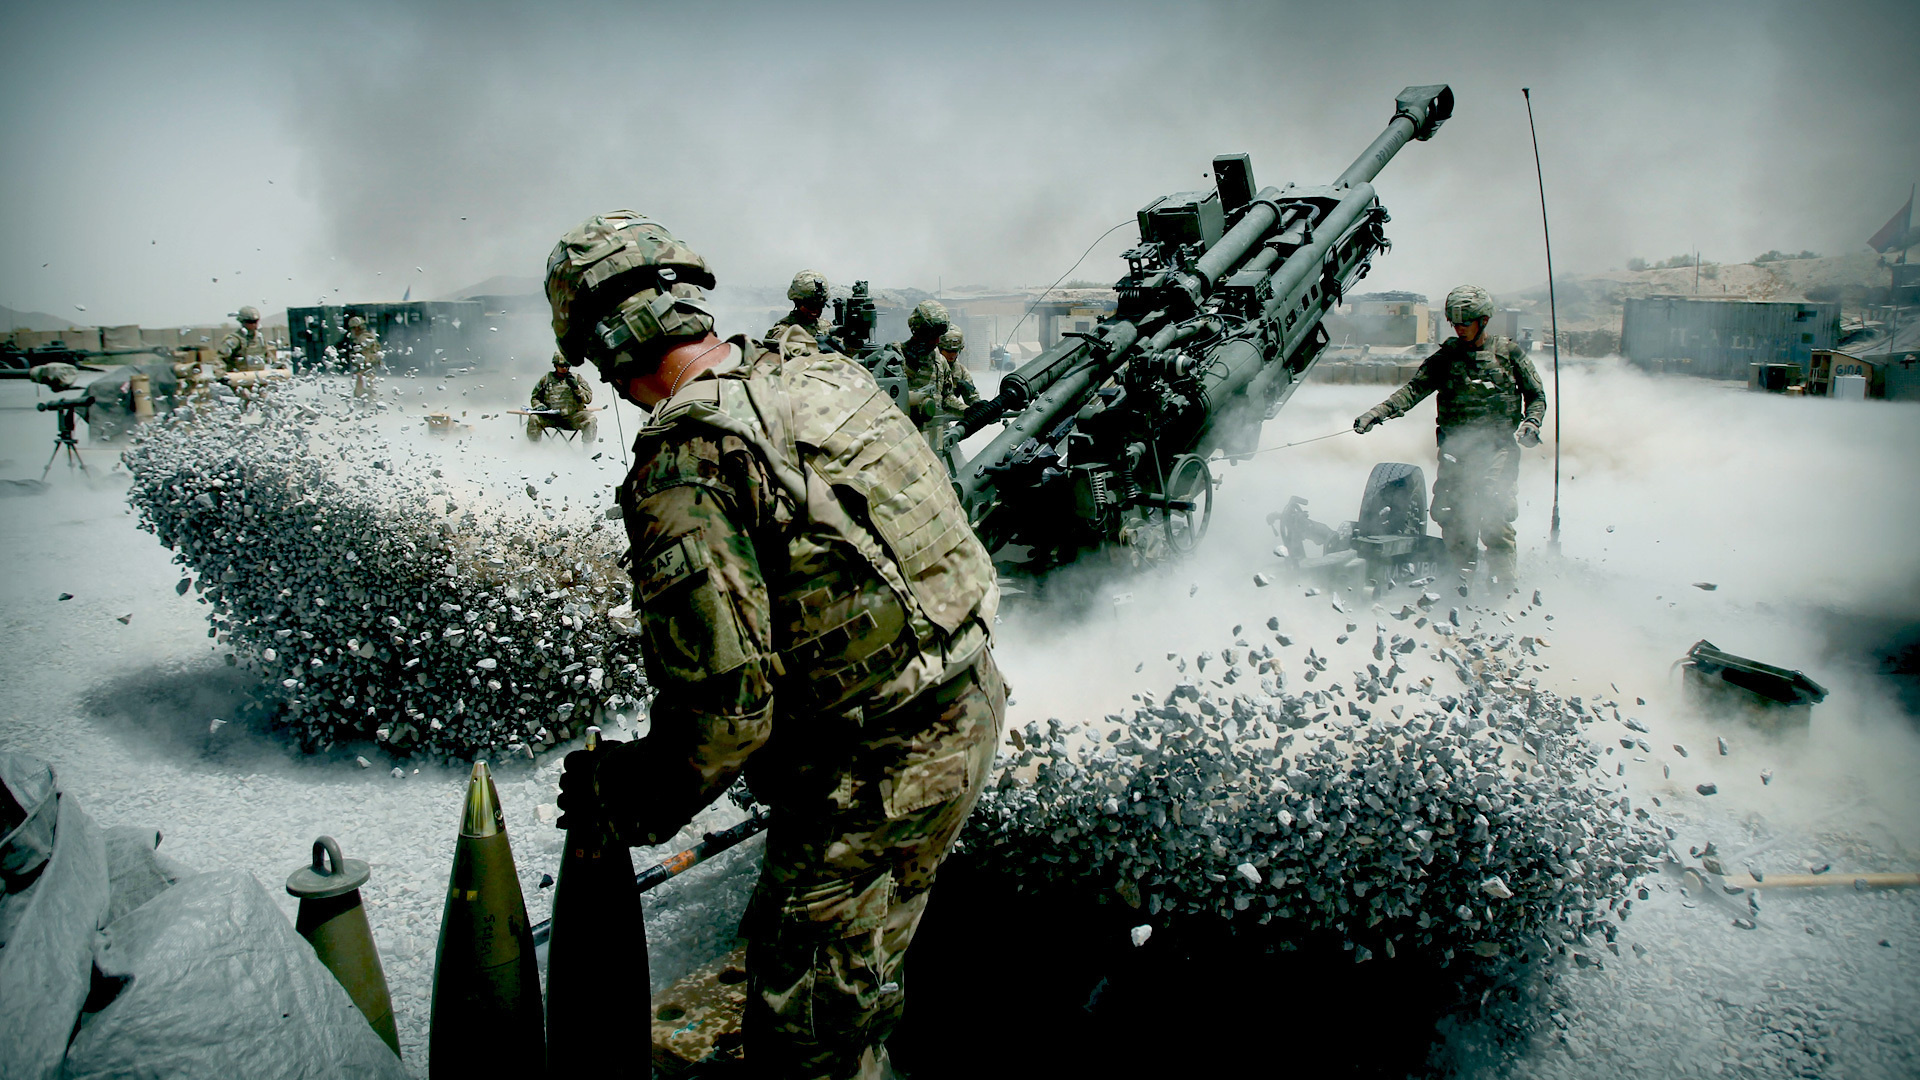 39300 download wallpaper People, Men, Soldiers screensavers and pictures for free